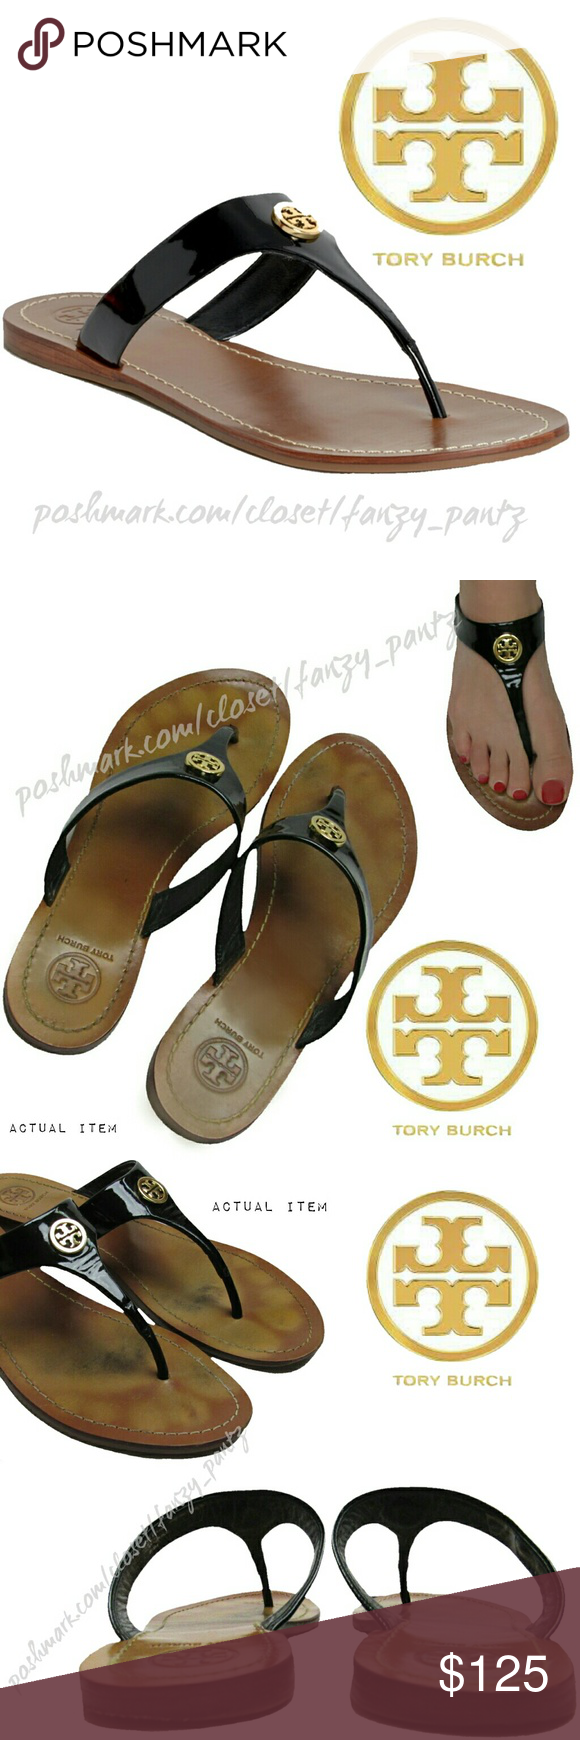 604e243bce3 Tory Burch Cameron Patent thong sandals 8.5 Tory Burch  Cameron  black  patent leather sandals with gold logo medallion. Similar look as Thora  sandals but ...